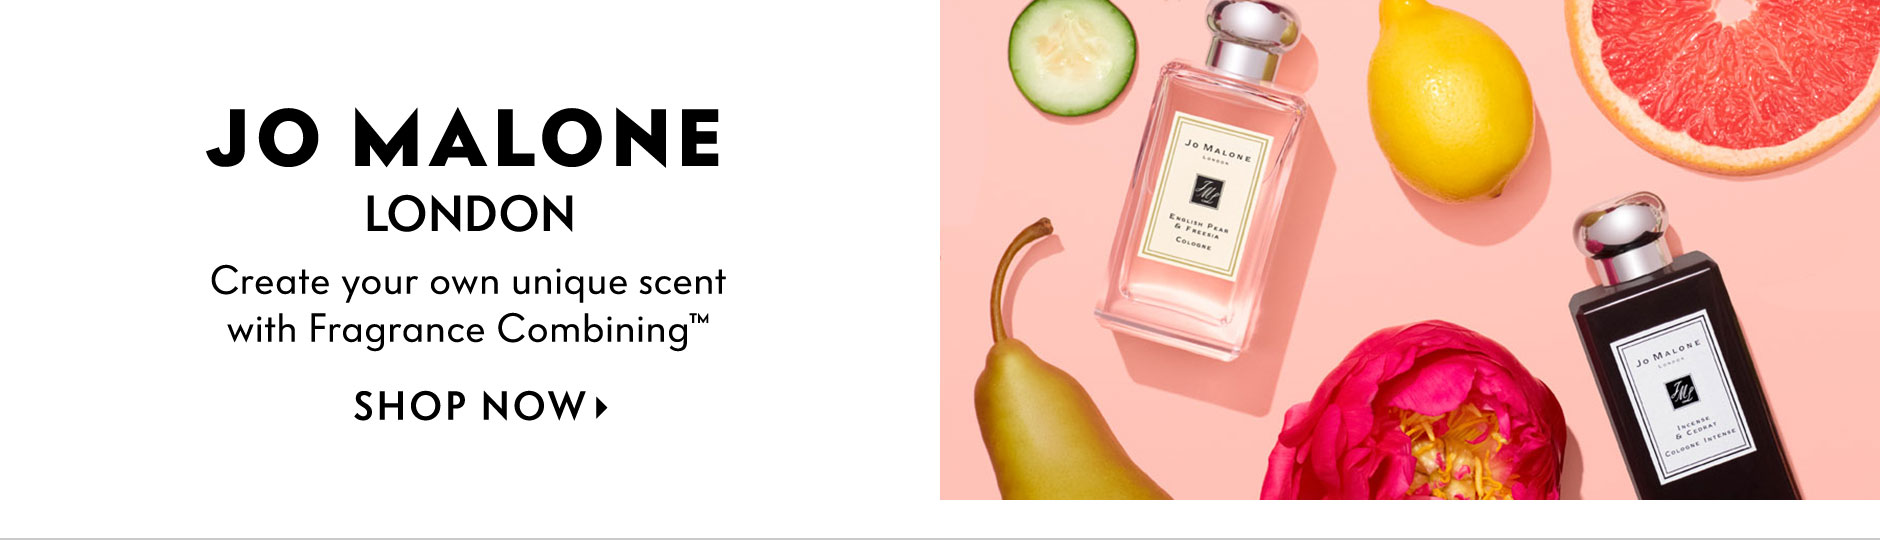 Jo Malone London - Create your own unique scent with Fragrance Combining